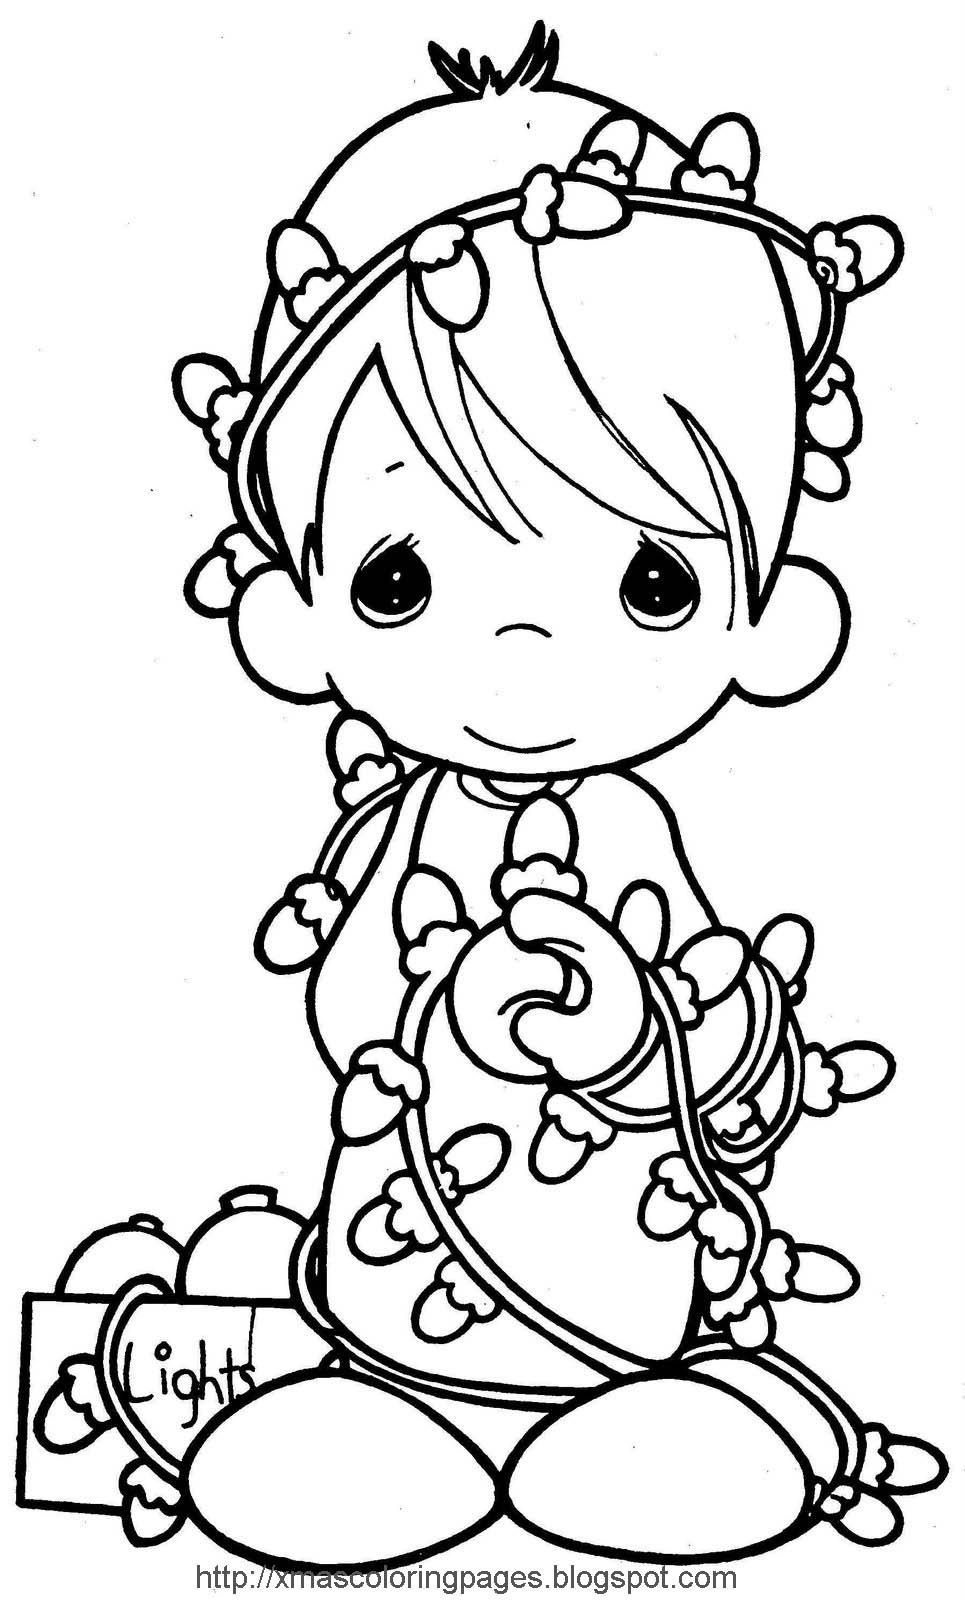 XMAS COLORING PAGES: ANGEL COLORING PAGE | Color sheets | Pinterest ...